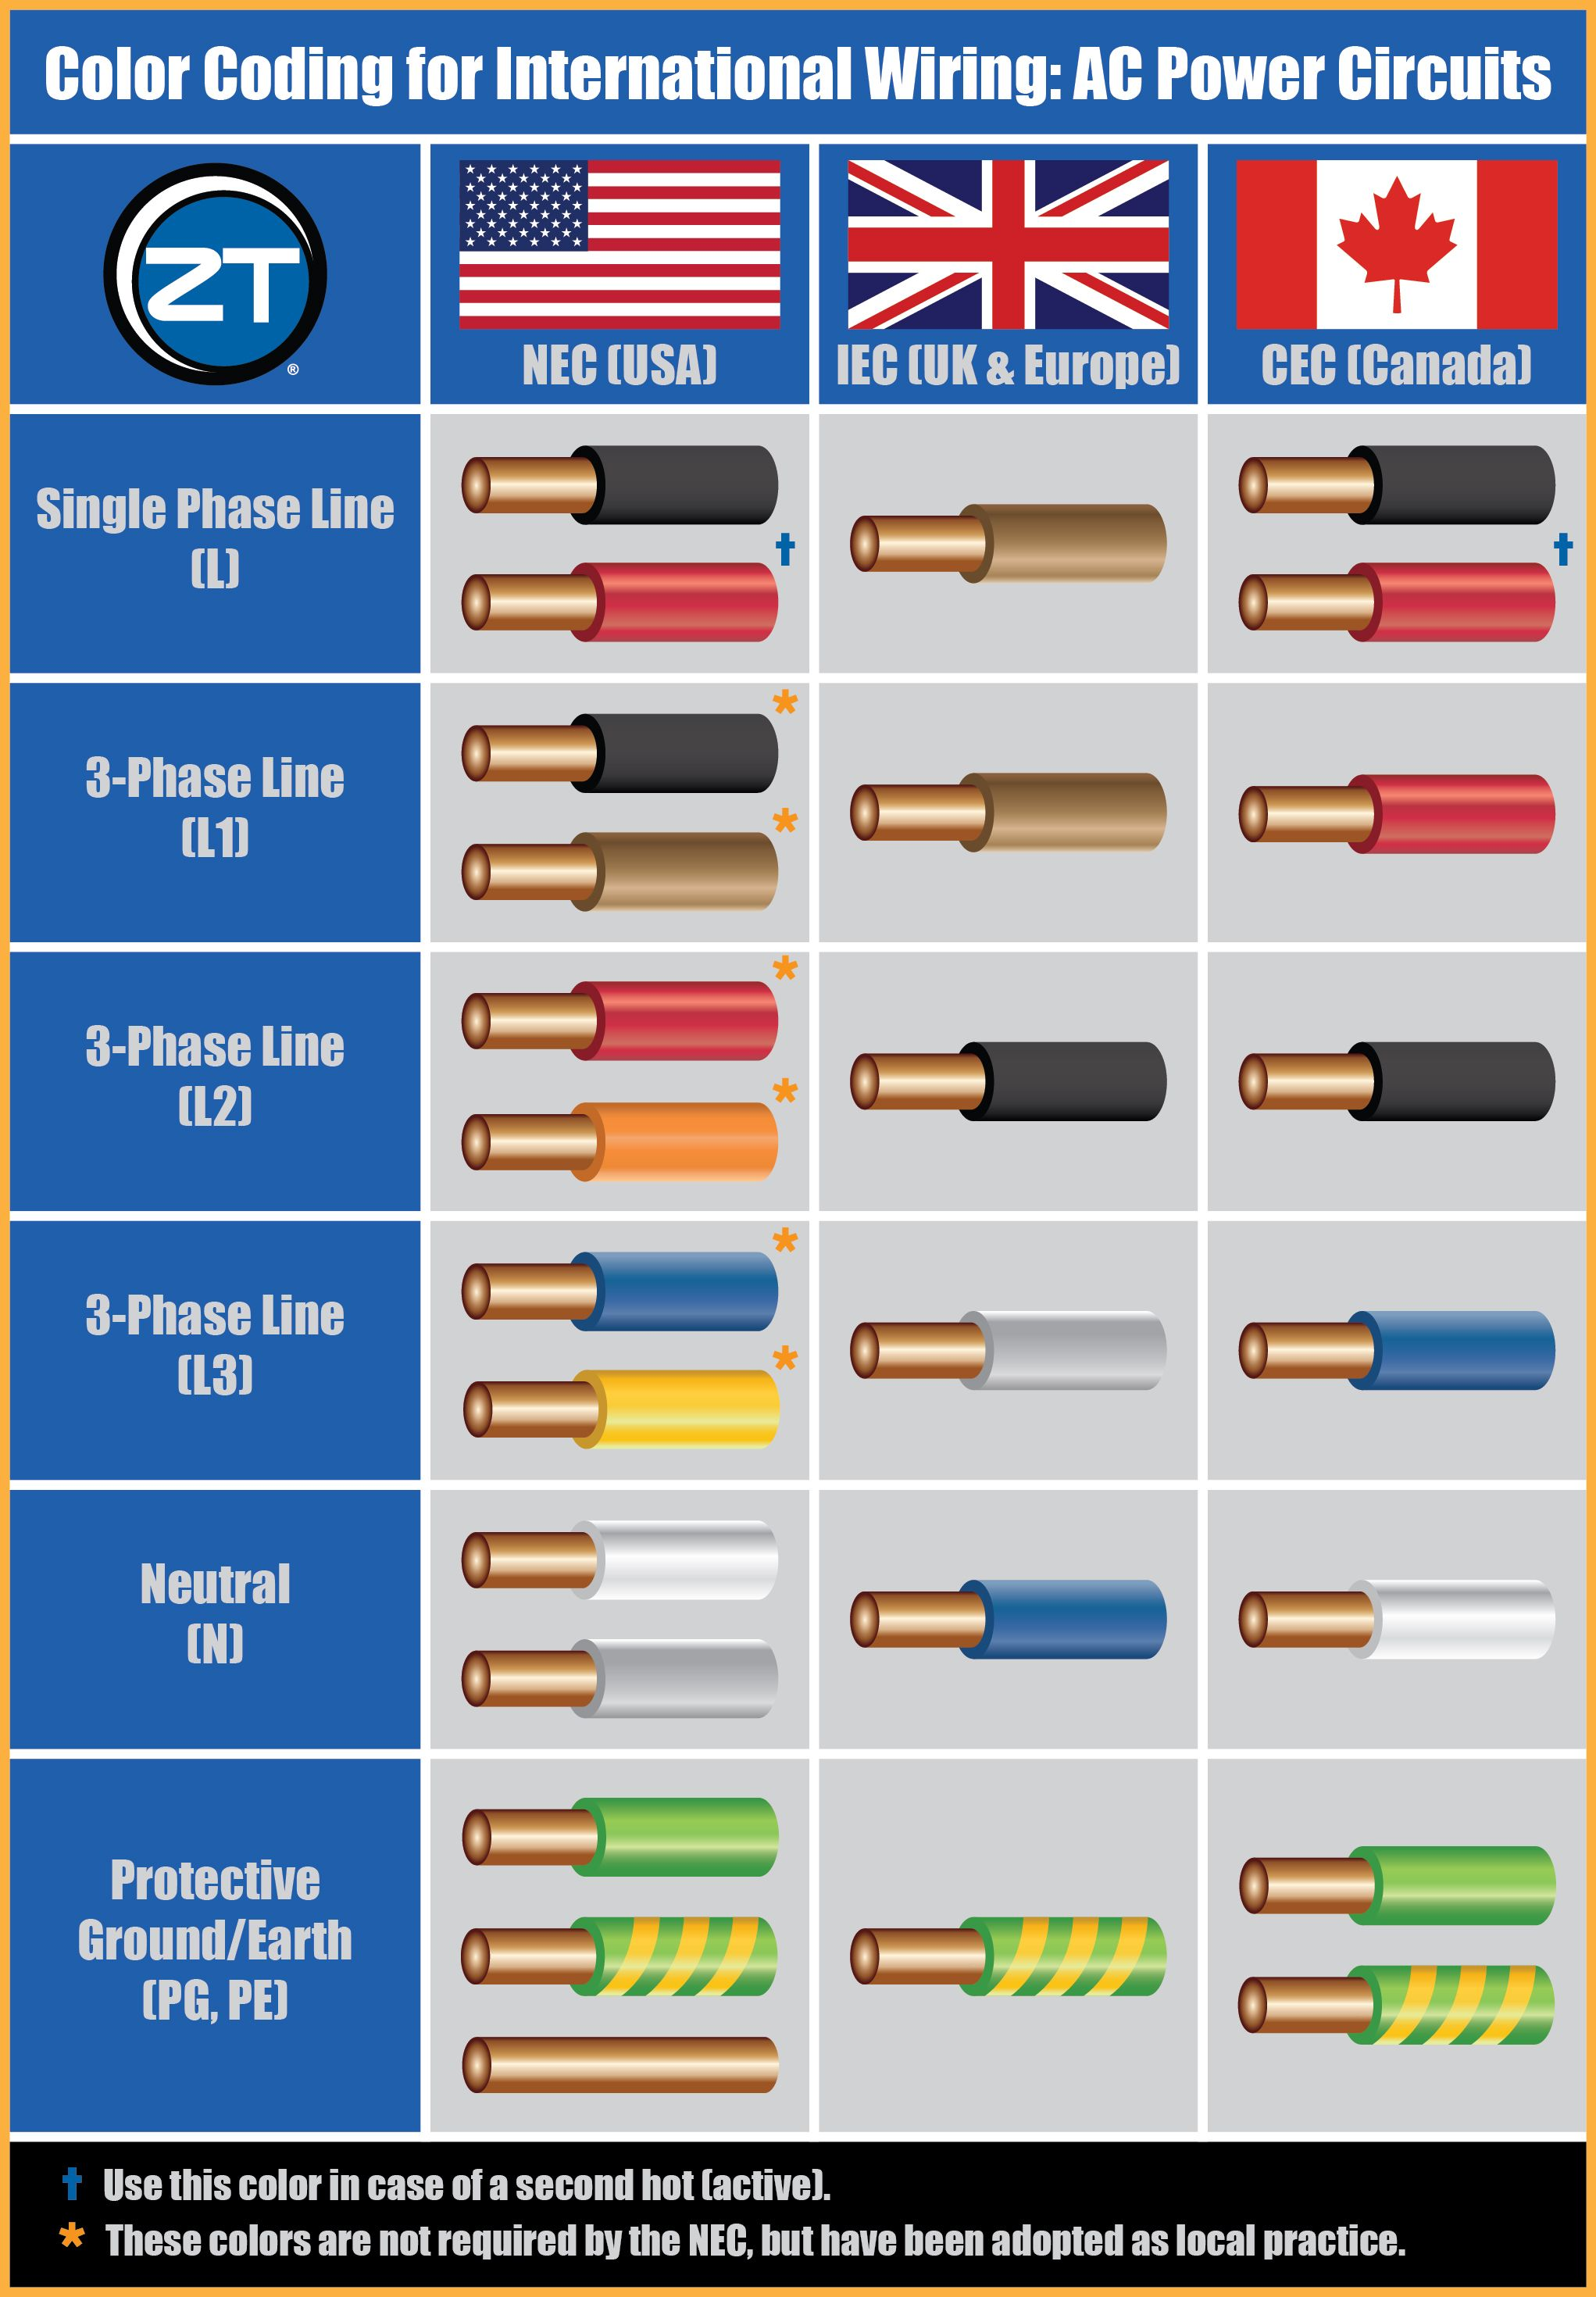 Guide To Color Coding For International Wiring Ih Diagrams Electrical Electrician Electric Cables